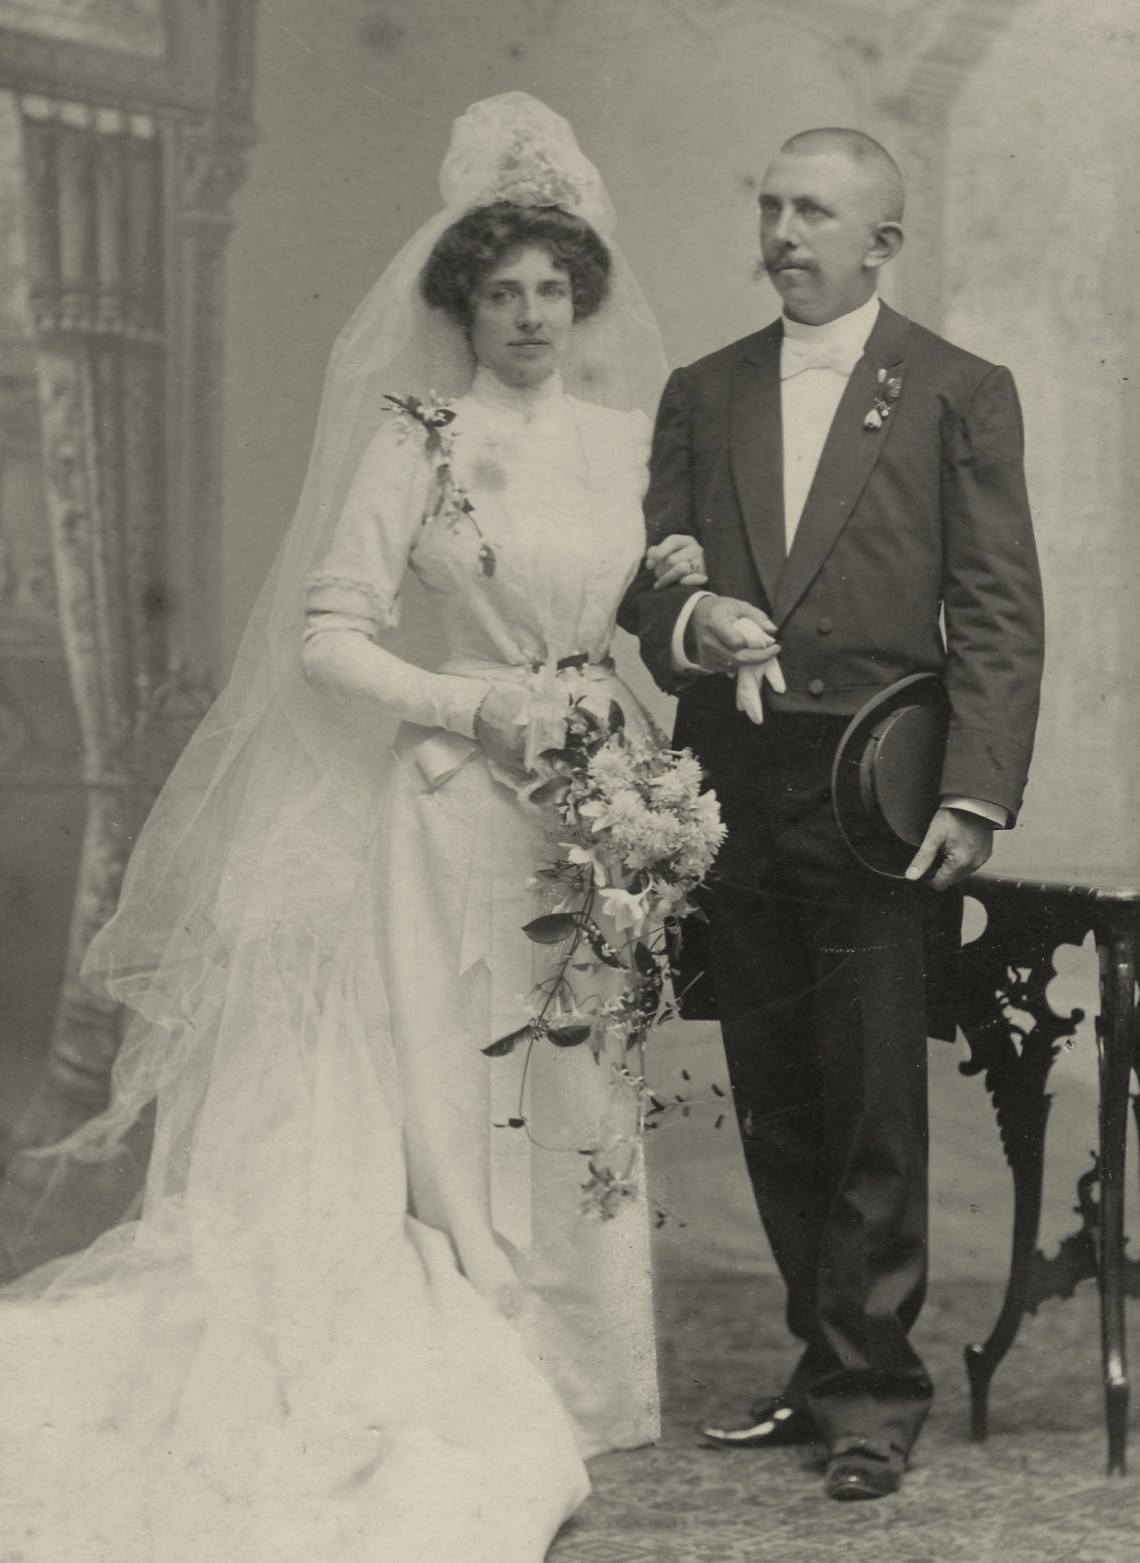 Julie's parents in 1901: Julie Frédérique Louise von Boddien (1863-1961) and Peter Jan van der Veen (1864-1923), director of the sugar refinery Sukowidi on East Java